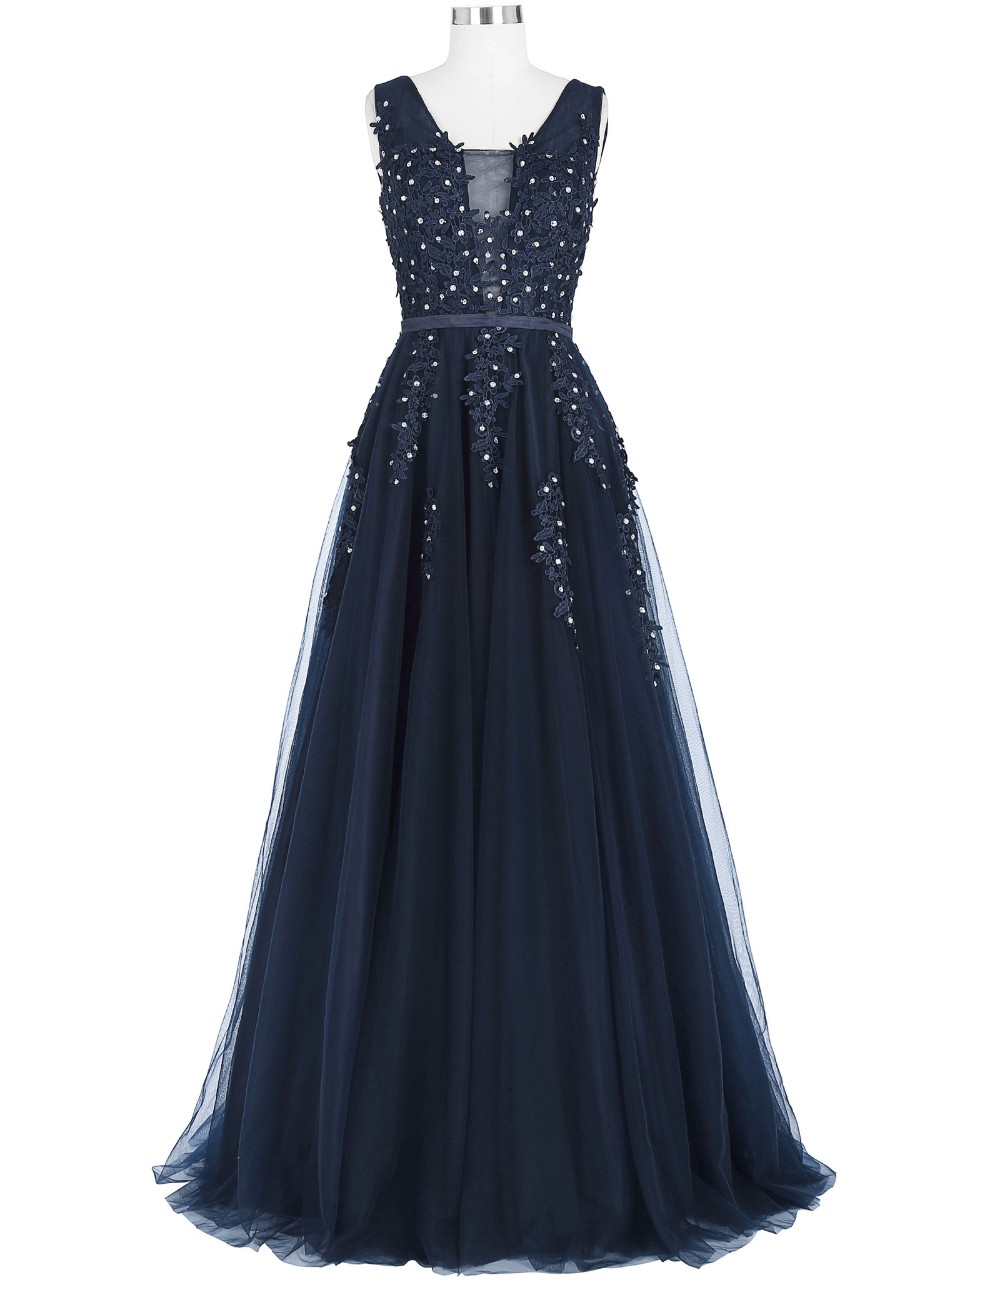 Grace Karin Elegant Deep V-Back Soft Tulle Netting Sleeveless Long Navy Blue Evening Dress 8 Size US 2~16 GK000130-1